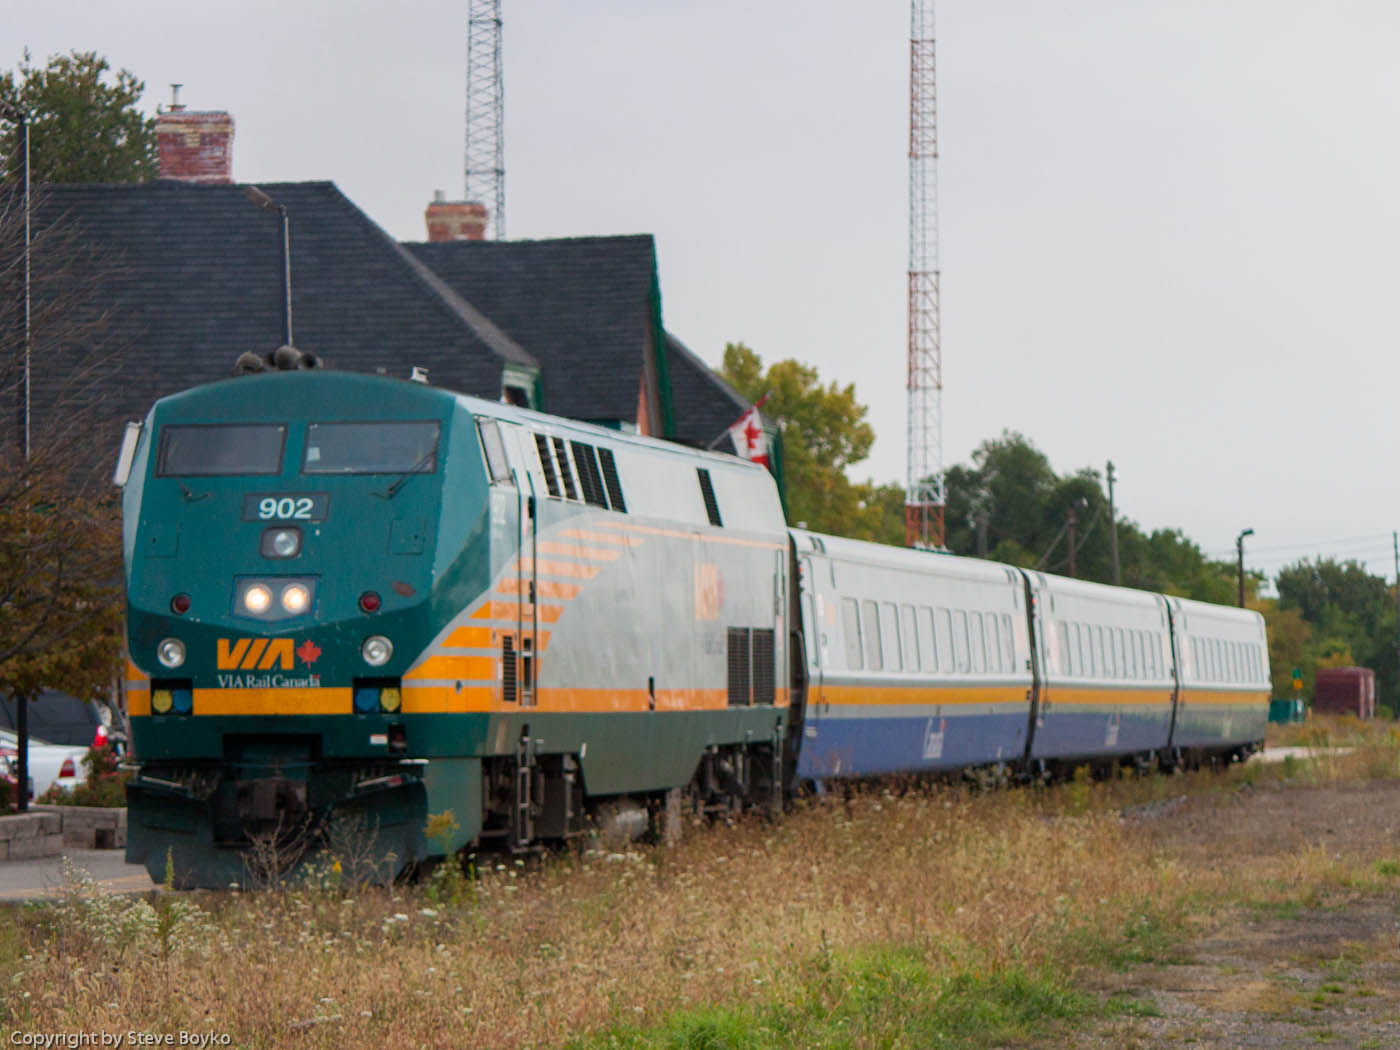 VIA 902 at the station in Chatham, ON 2012/09/26